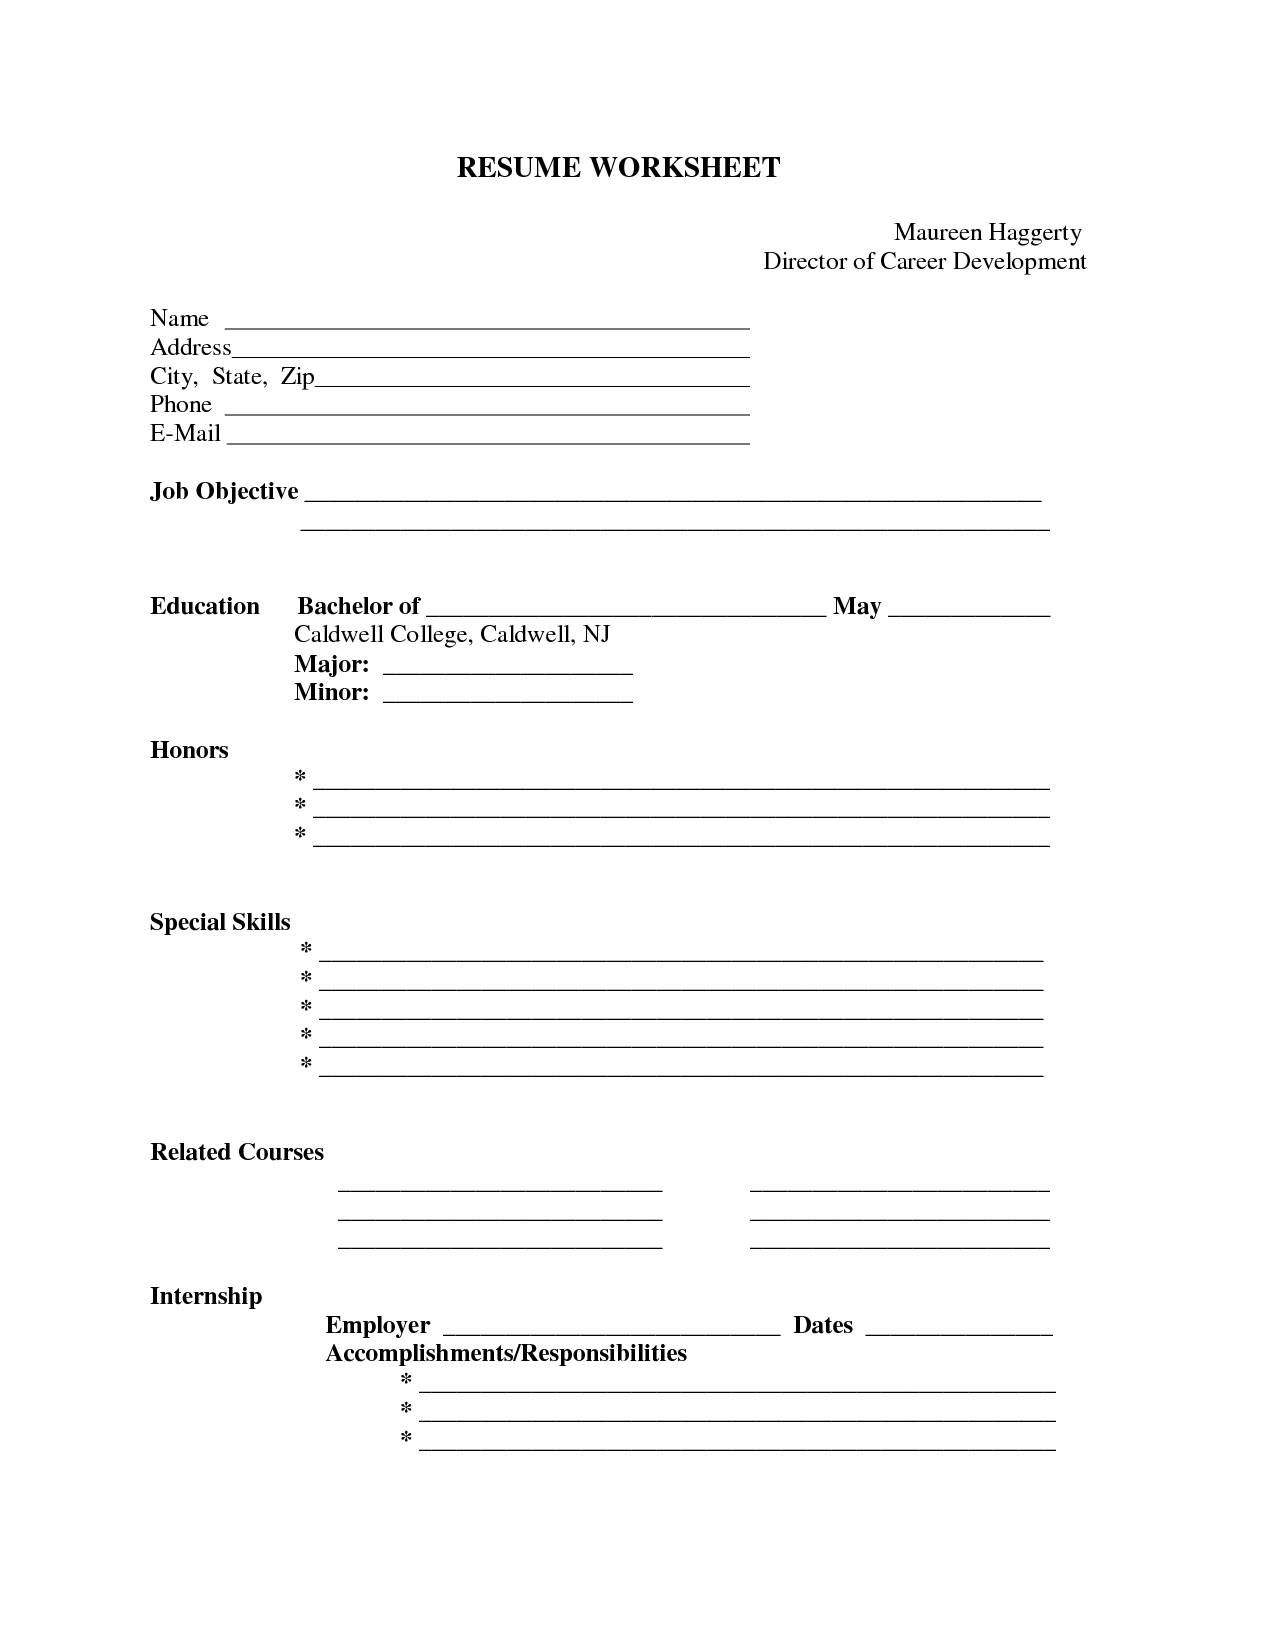 Free printable blank resume forms http www for Free resume form to print out